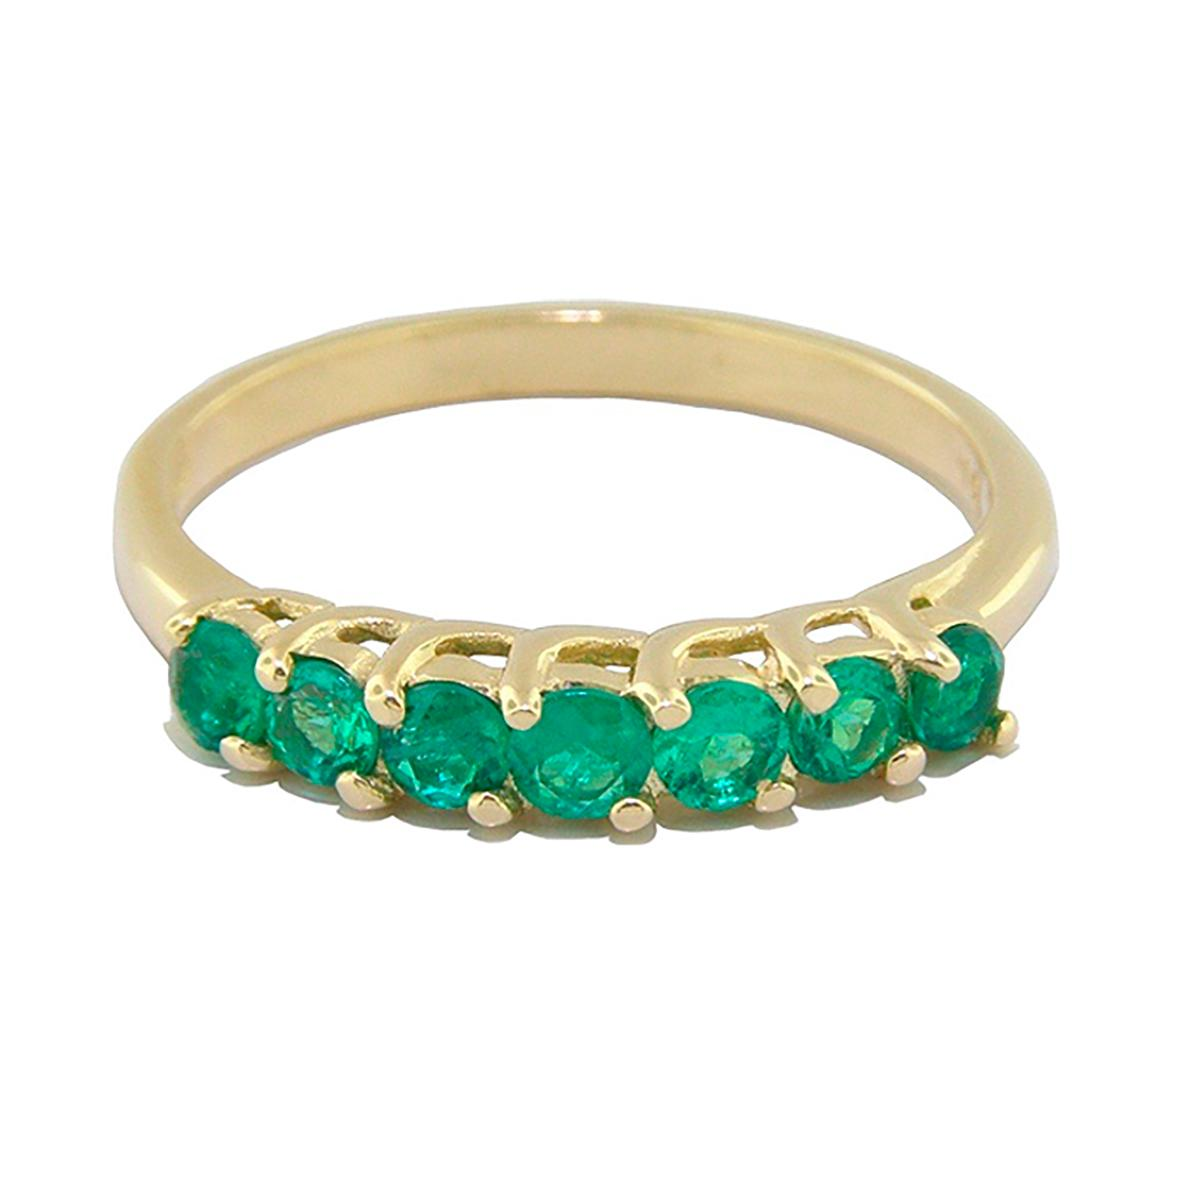 half-eternity-wedding-band-ring-in-18k-gold-with-round-cut-emeralds